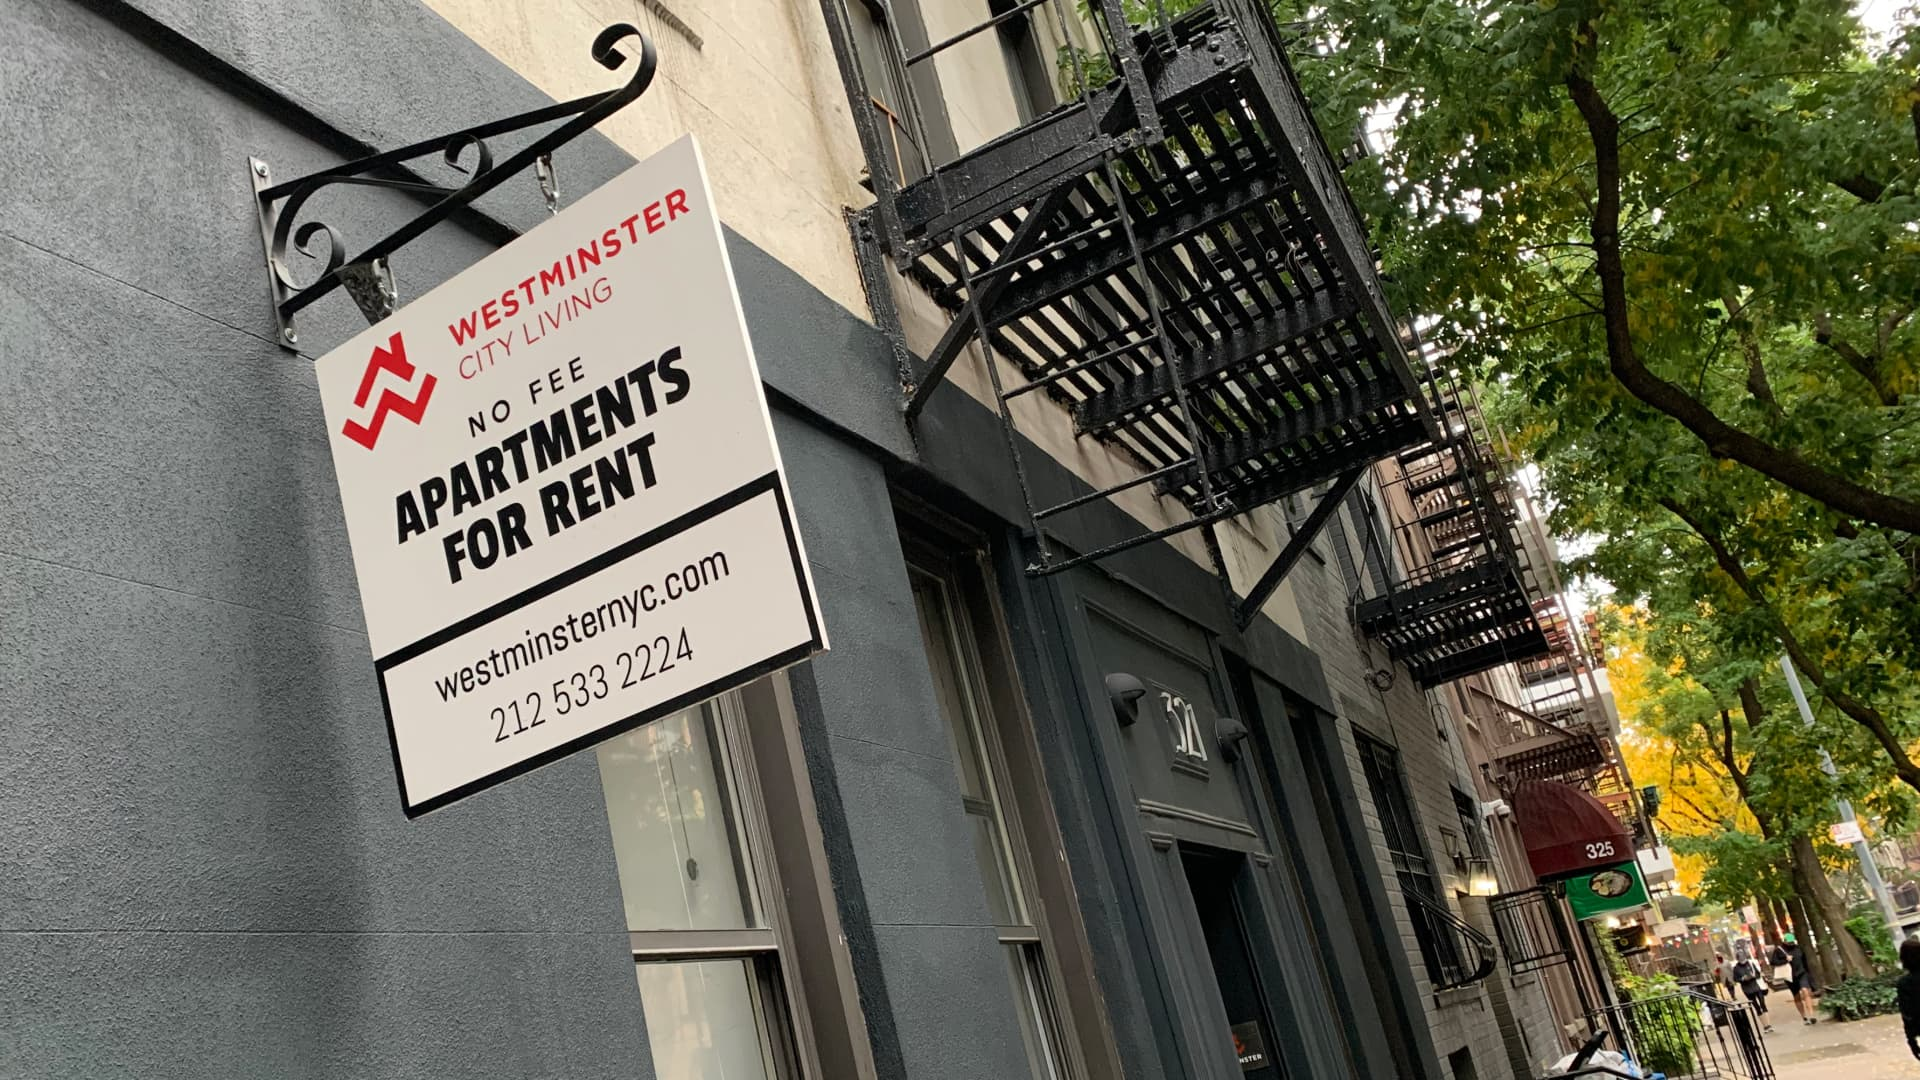 Sign advertising apartments for rent in the Upper East Side in New York City.